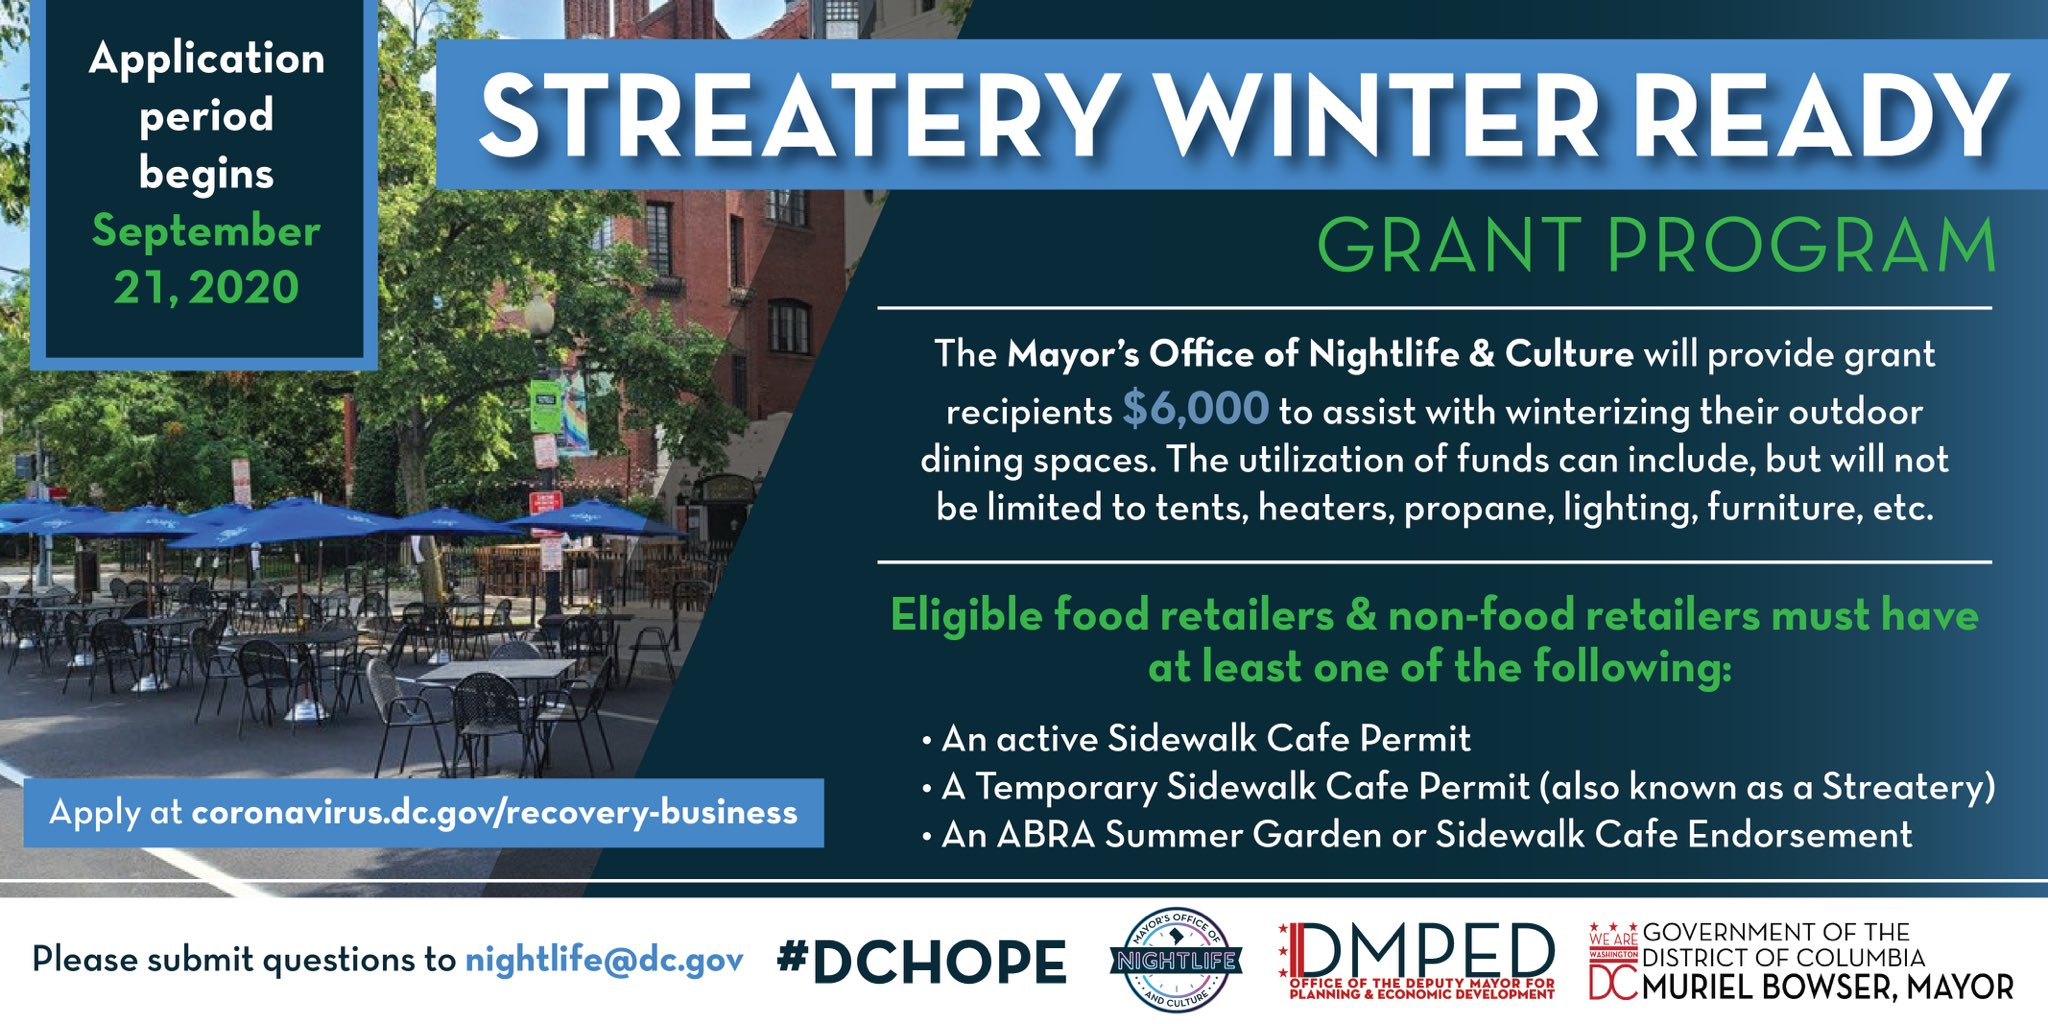 Food Place Open Christmas 2020 Dc DC to Award $6,000 Grants to DC Restaurants/Bars to Winterize